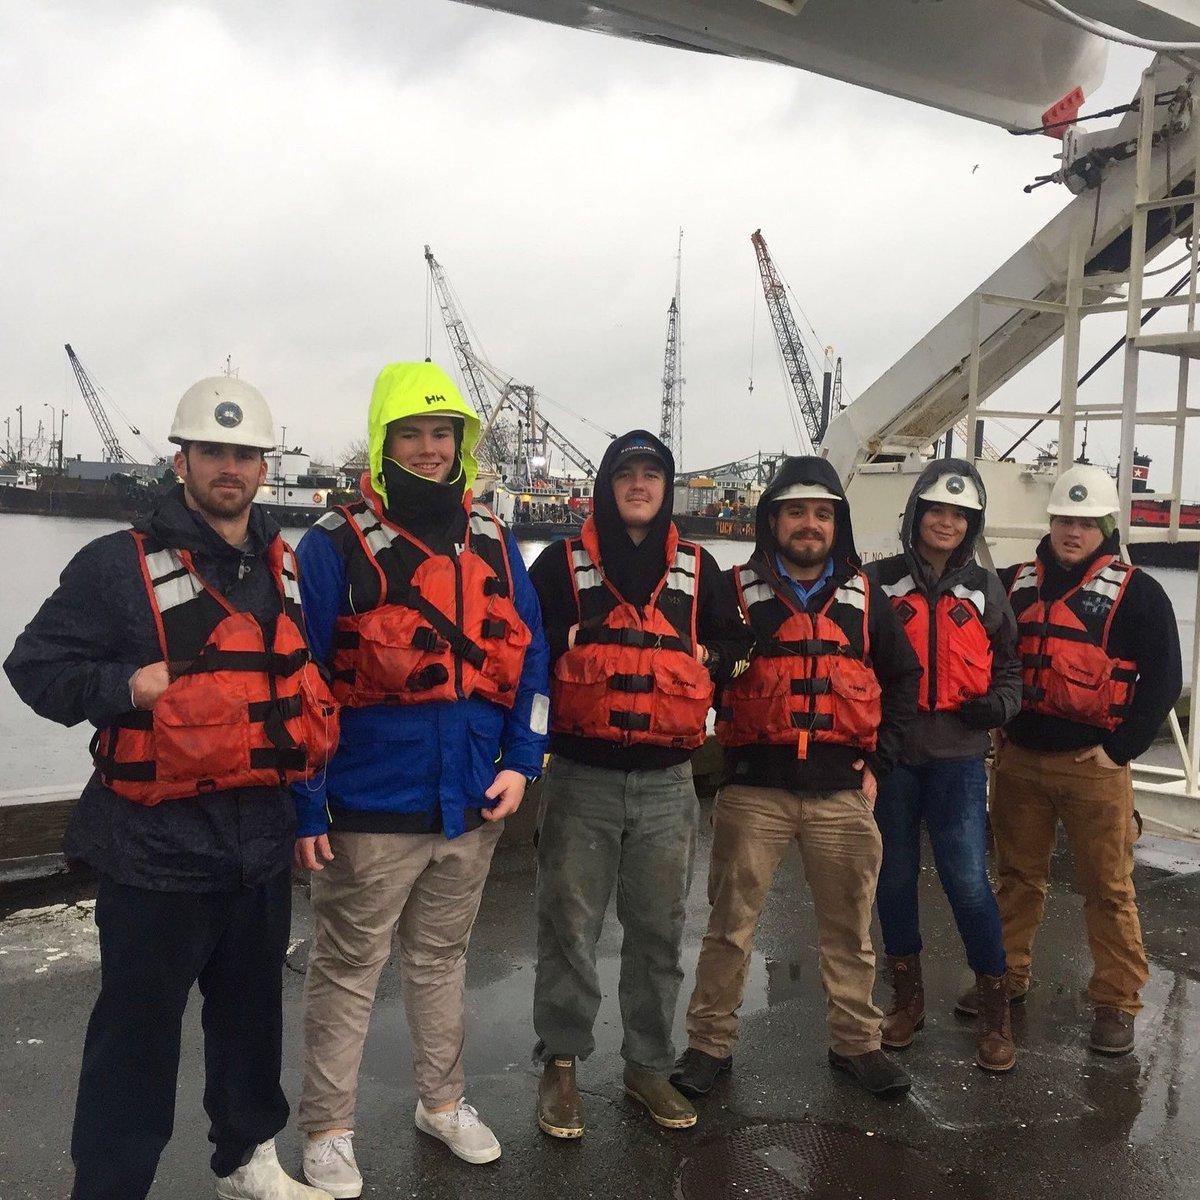 Happy Monday everyone!We've had a great start to our day as Northeast Maritime Institute's Cohort 8 has successfully completed their Proficiency in Survival Craft practicals. Congratulations!#honorthemariner #PSC #collegeofmaritimescience